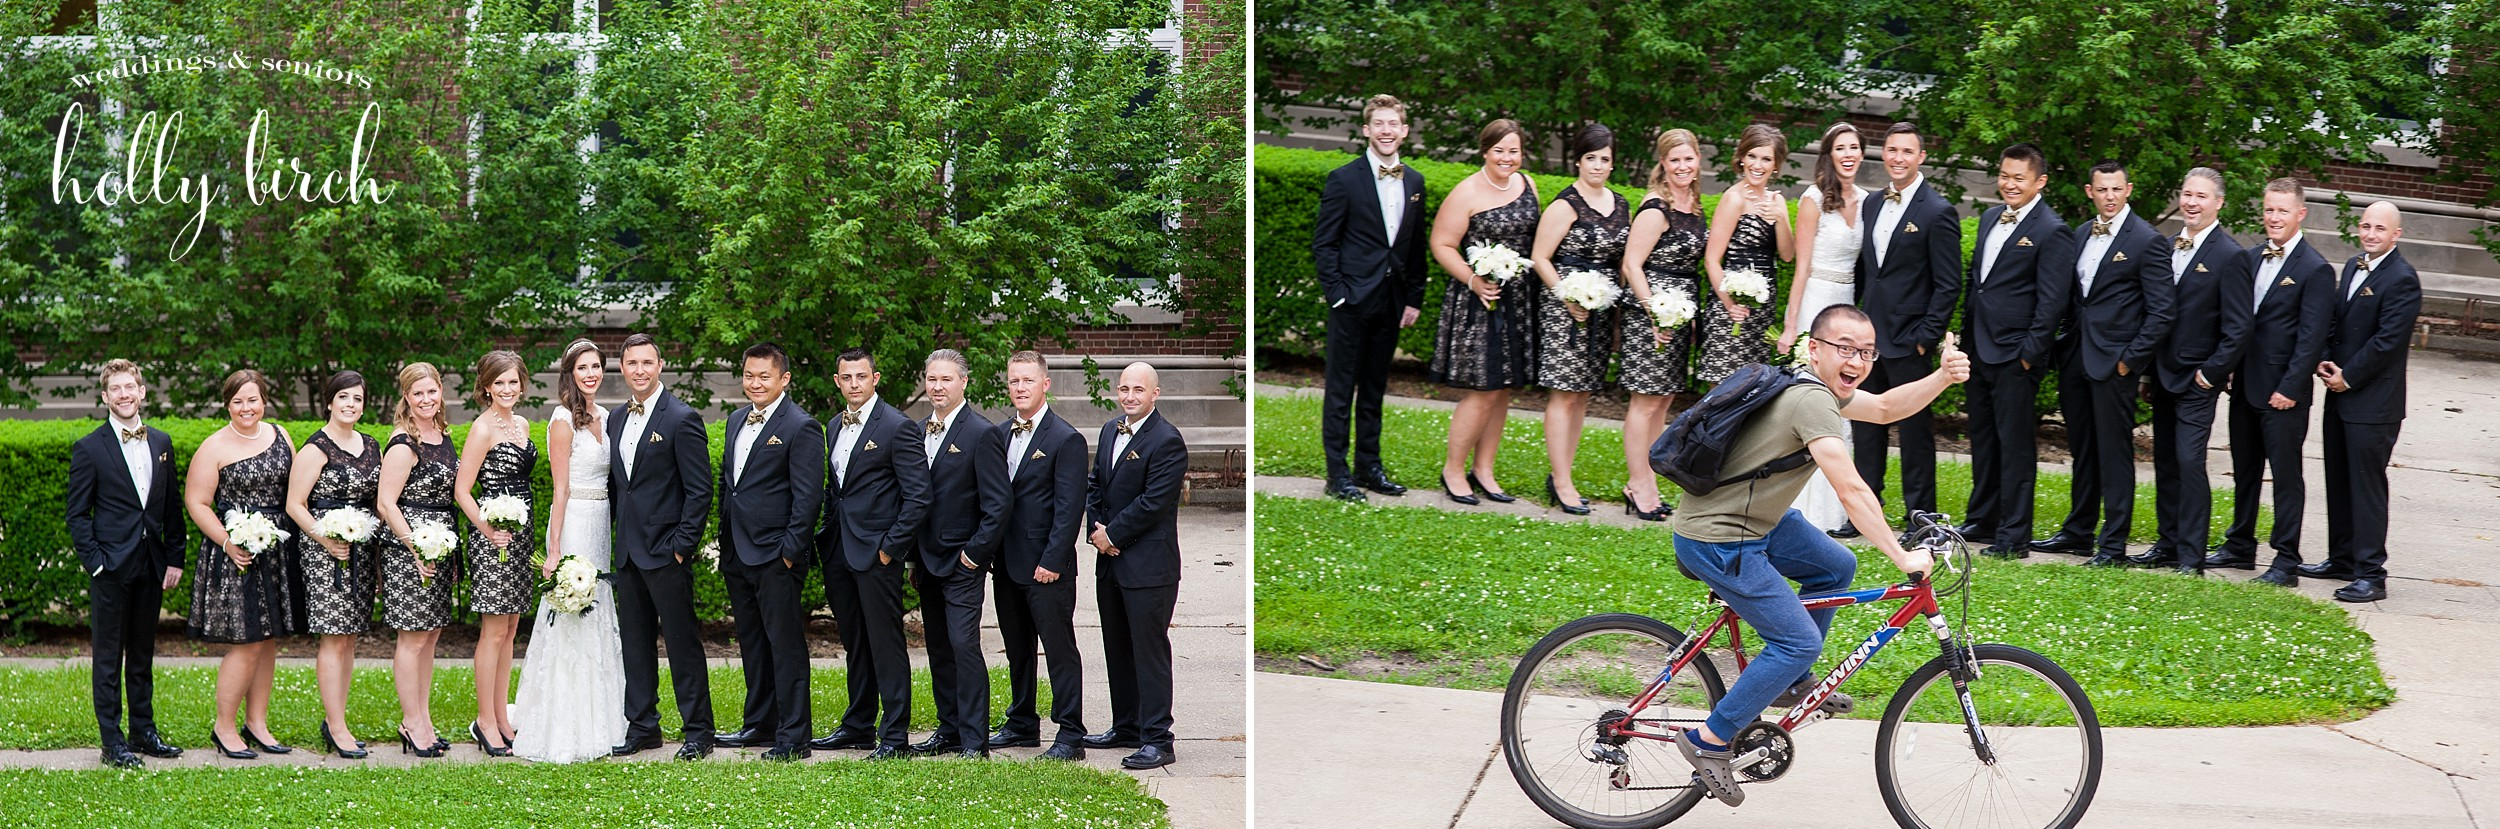 wedding party oops bicyclist